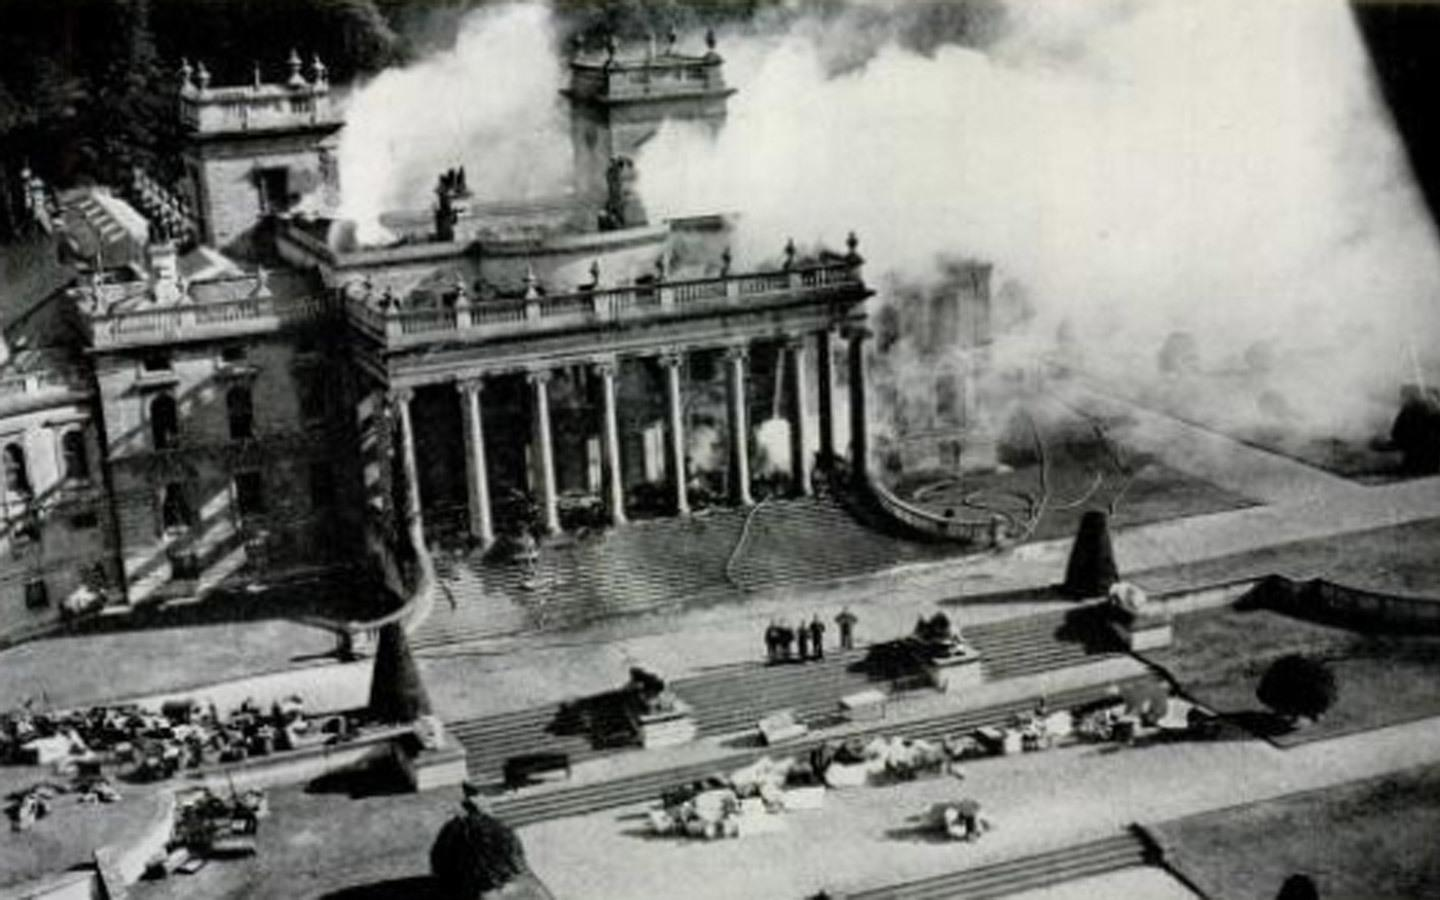 The Witley Court fire in 1937